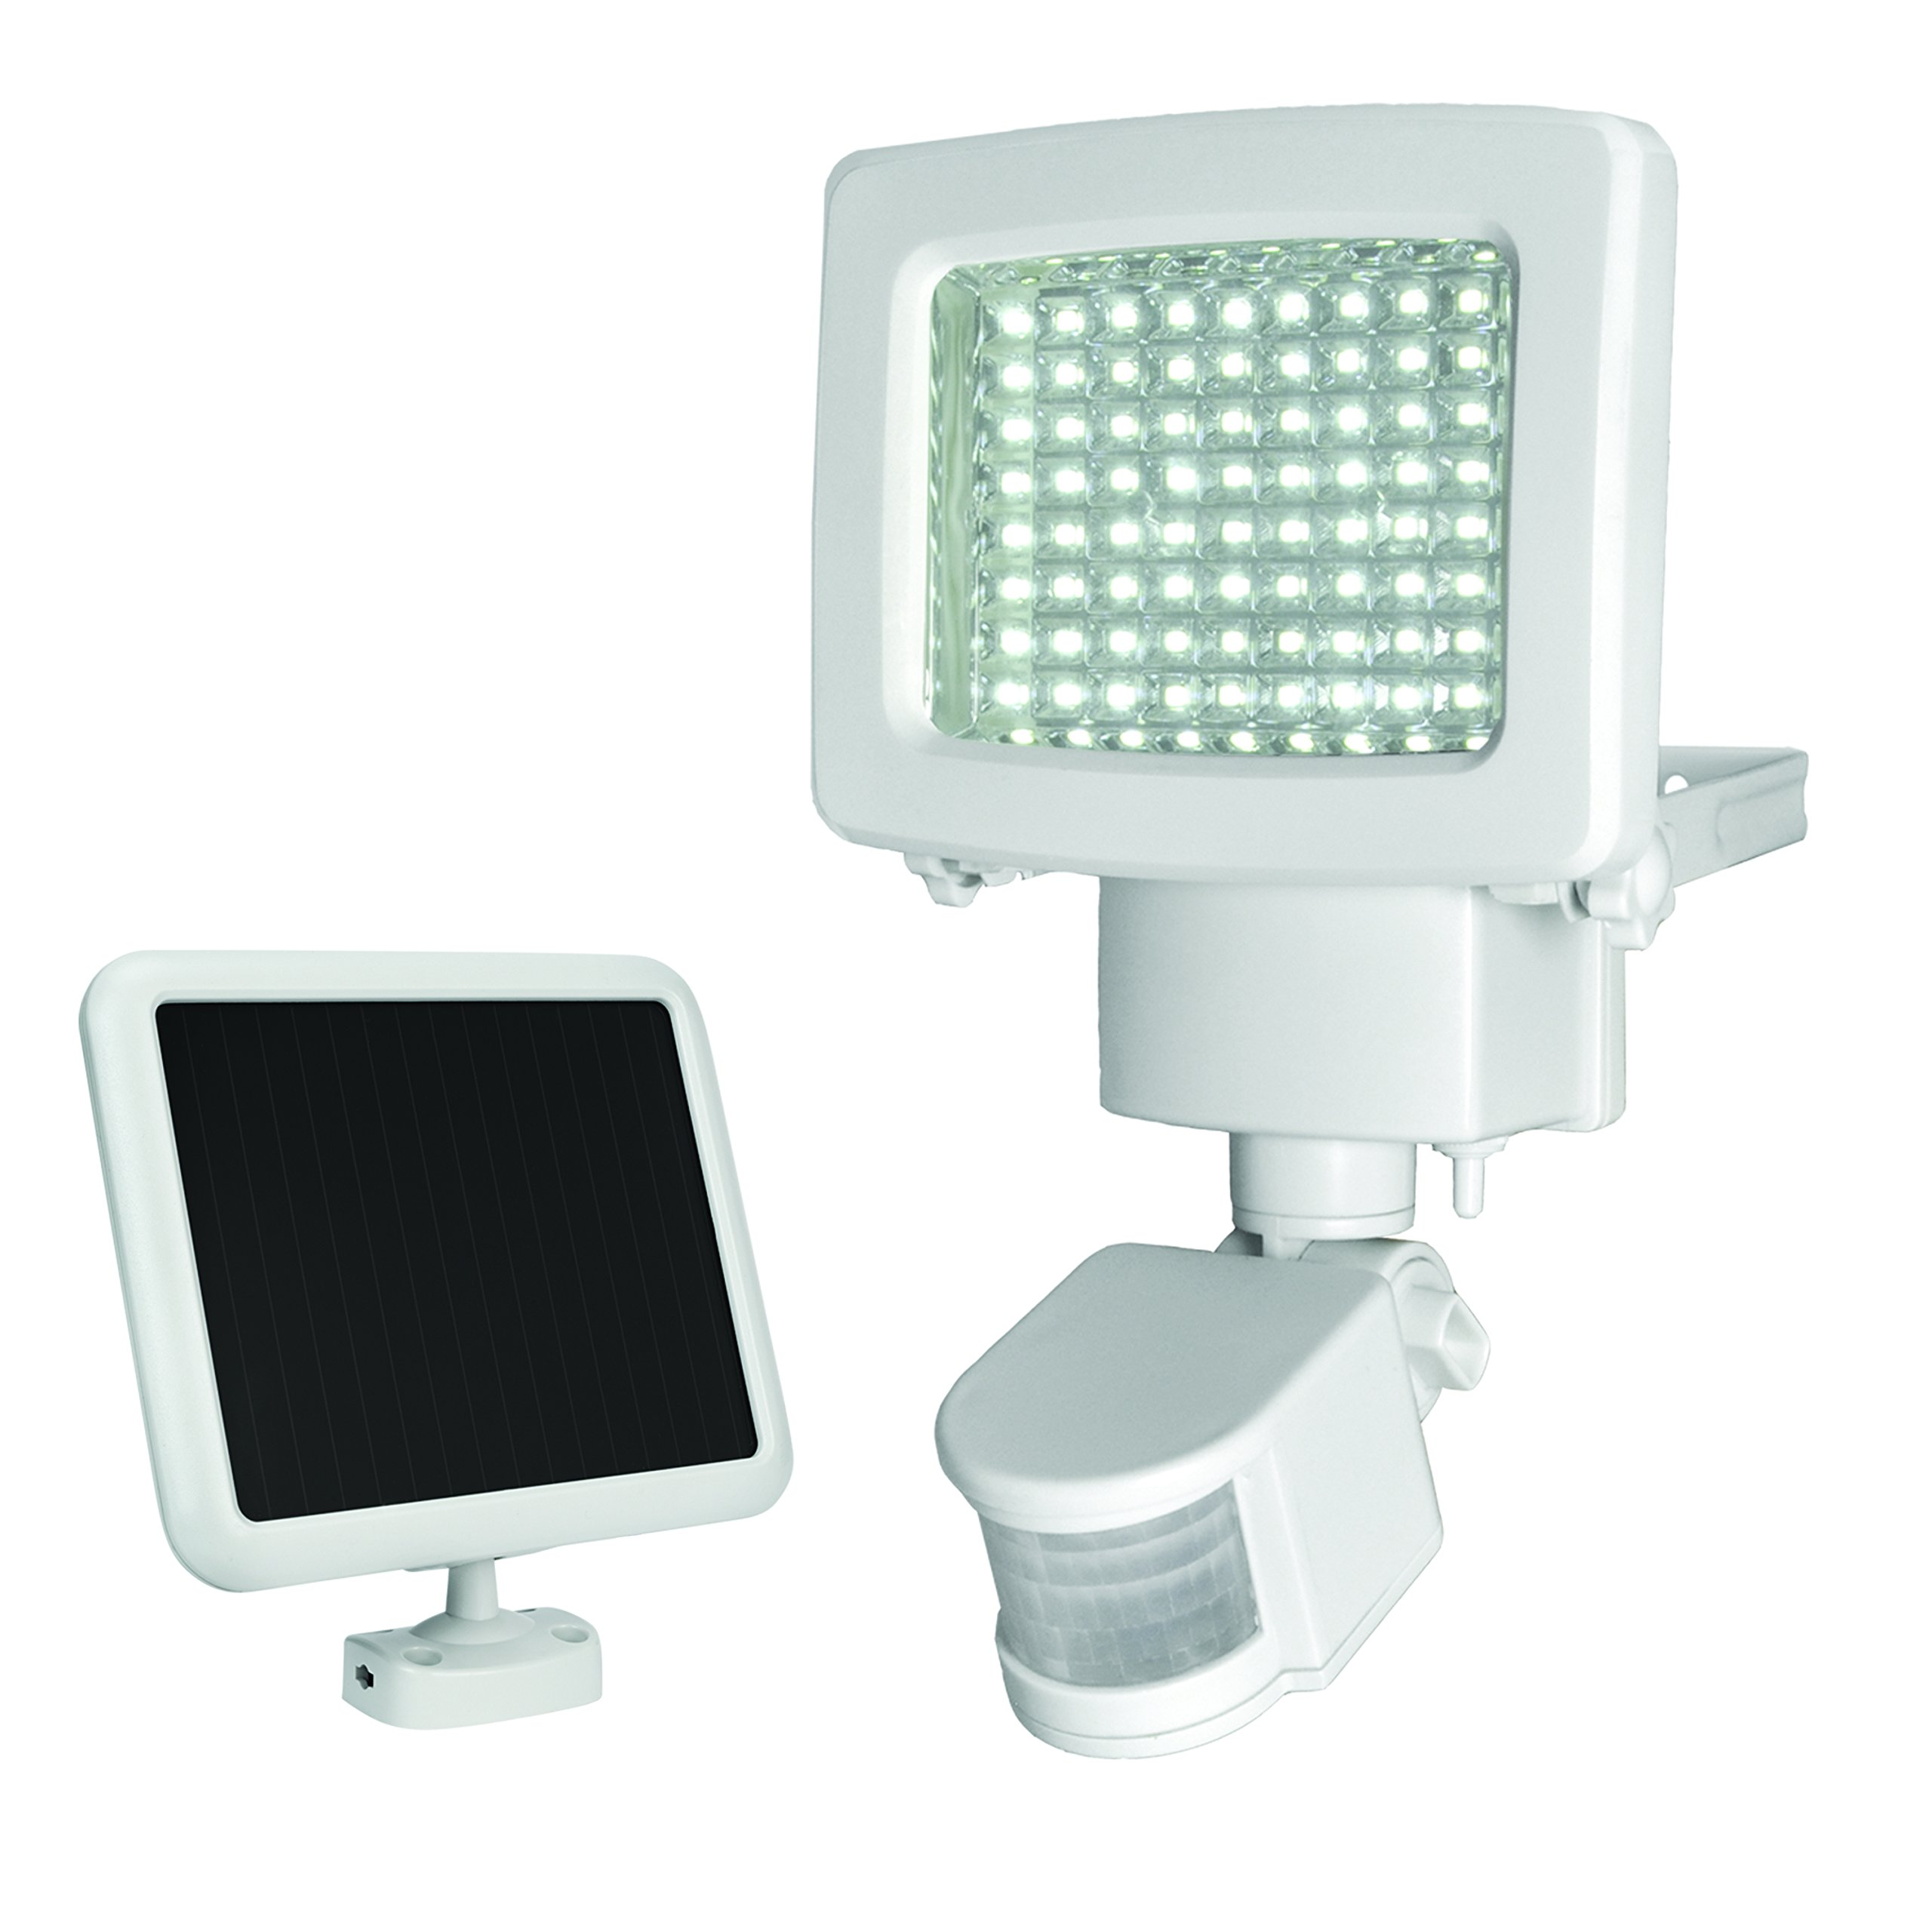 Outdoor Security Lights With Sensor Argos: Sunforce 80 LED Solar Motion Light.